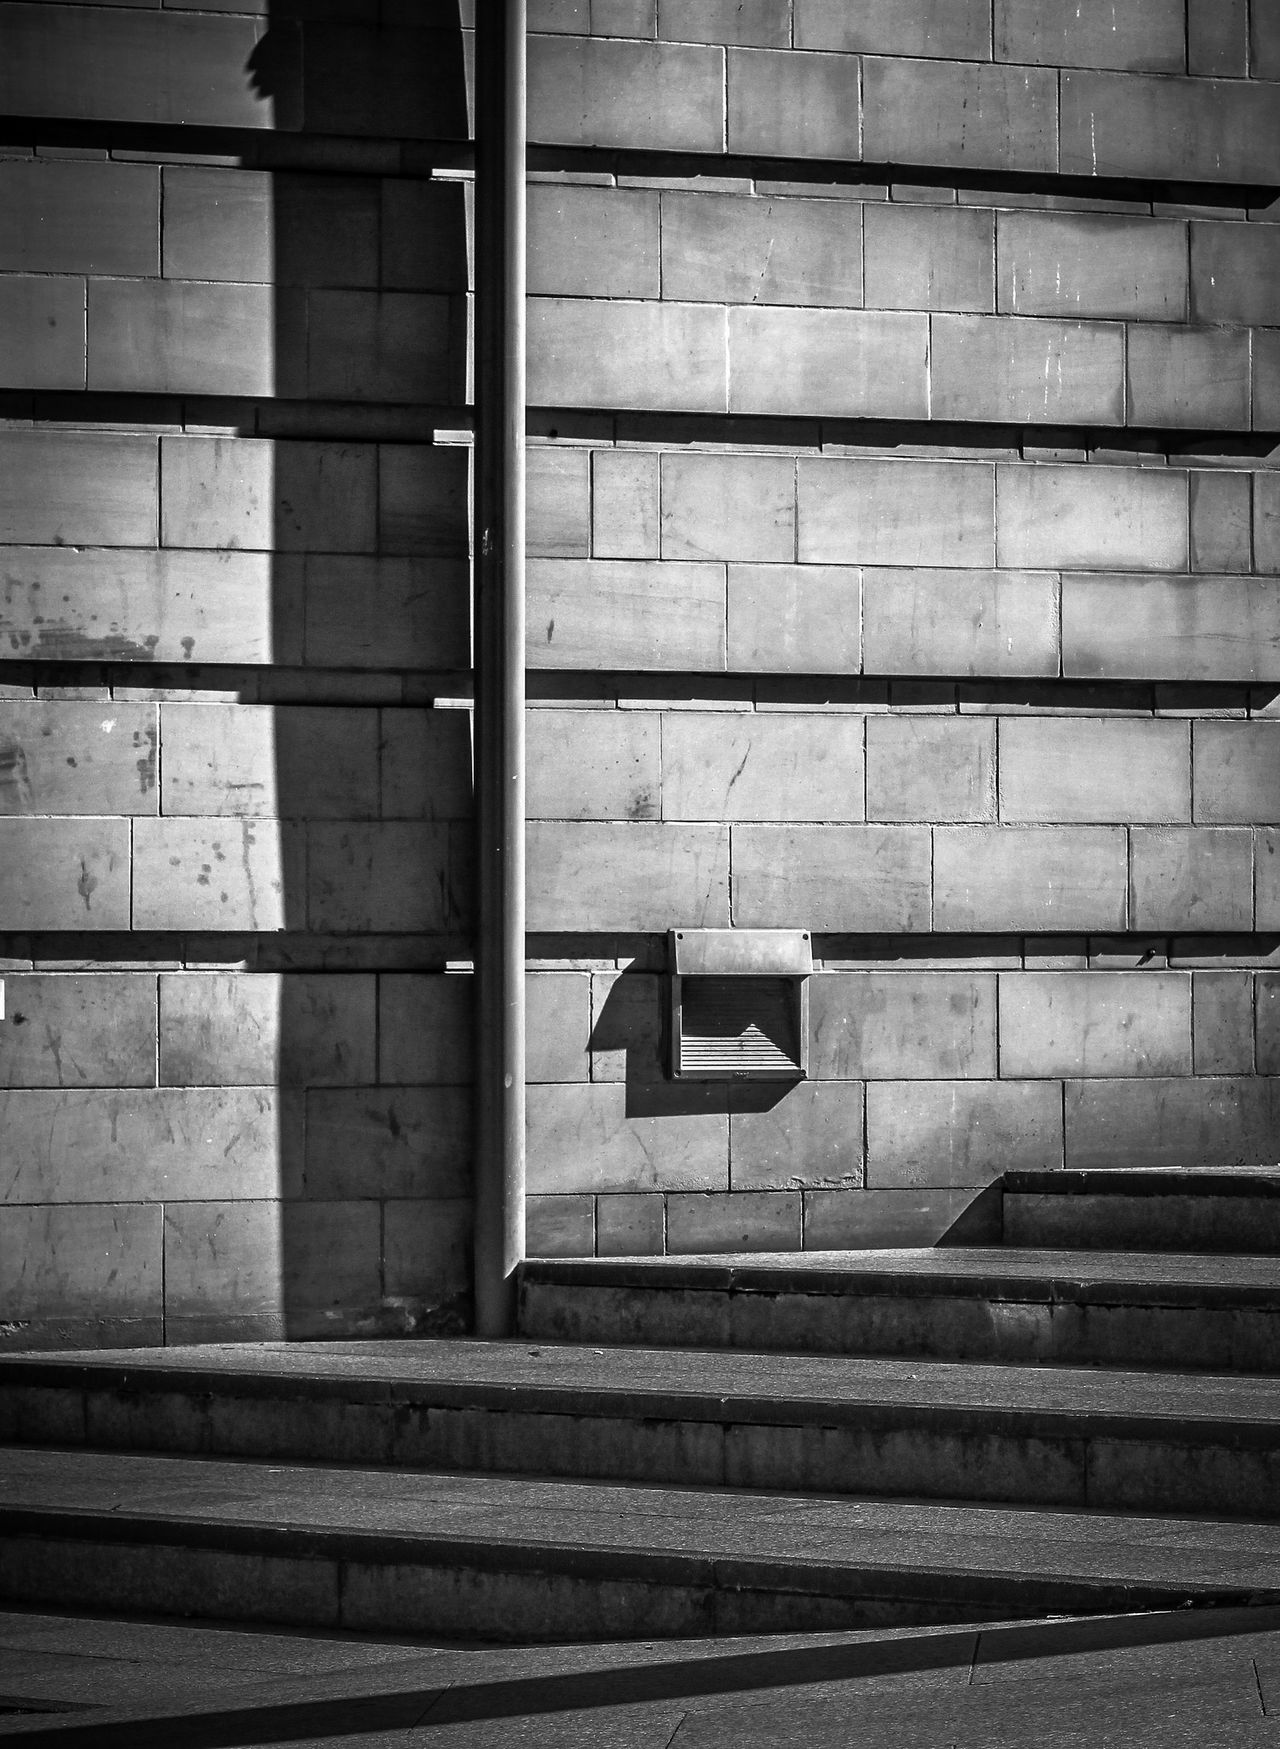 Architecture Black & White Blocks Building Exterior Built Structure City Day Minimal Minimalism Minimalism_bw Minimalist Minimalist Architecture Minimalistic No People Outdoors Shadow And Light Shadows & Lights Sombre Staircase Steps Steps And Staircases Urban Geometry